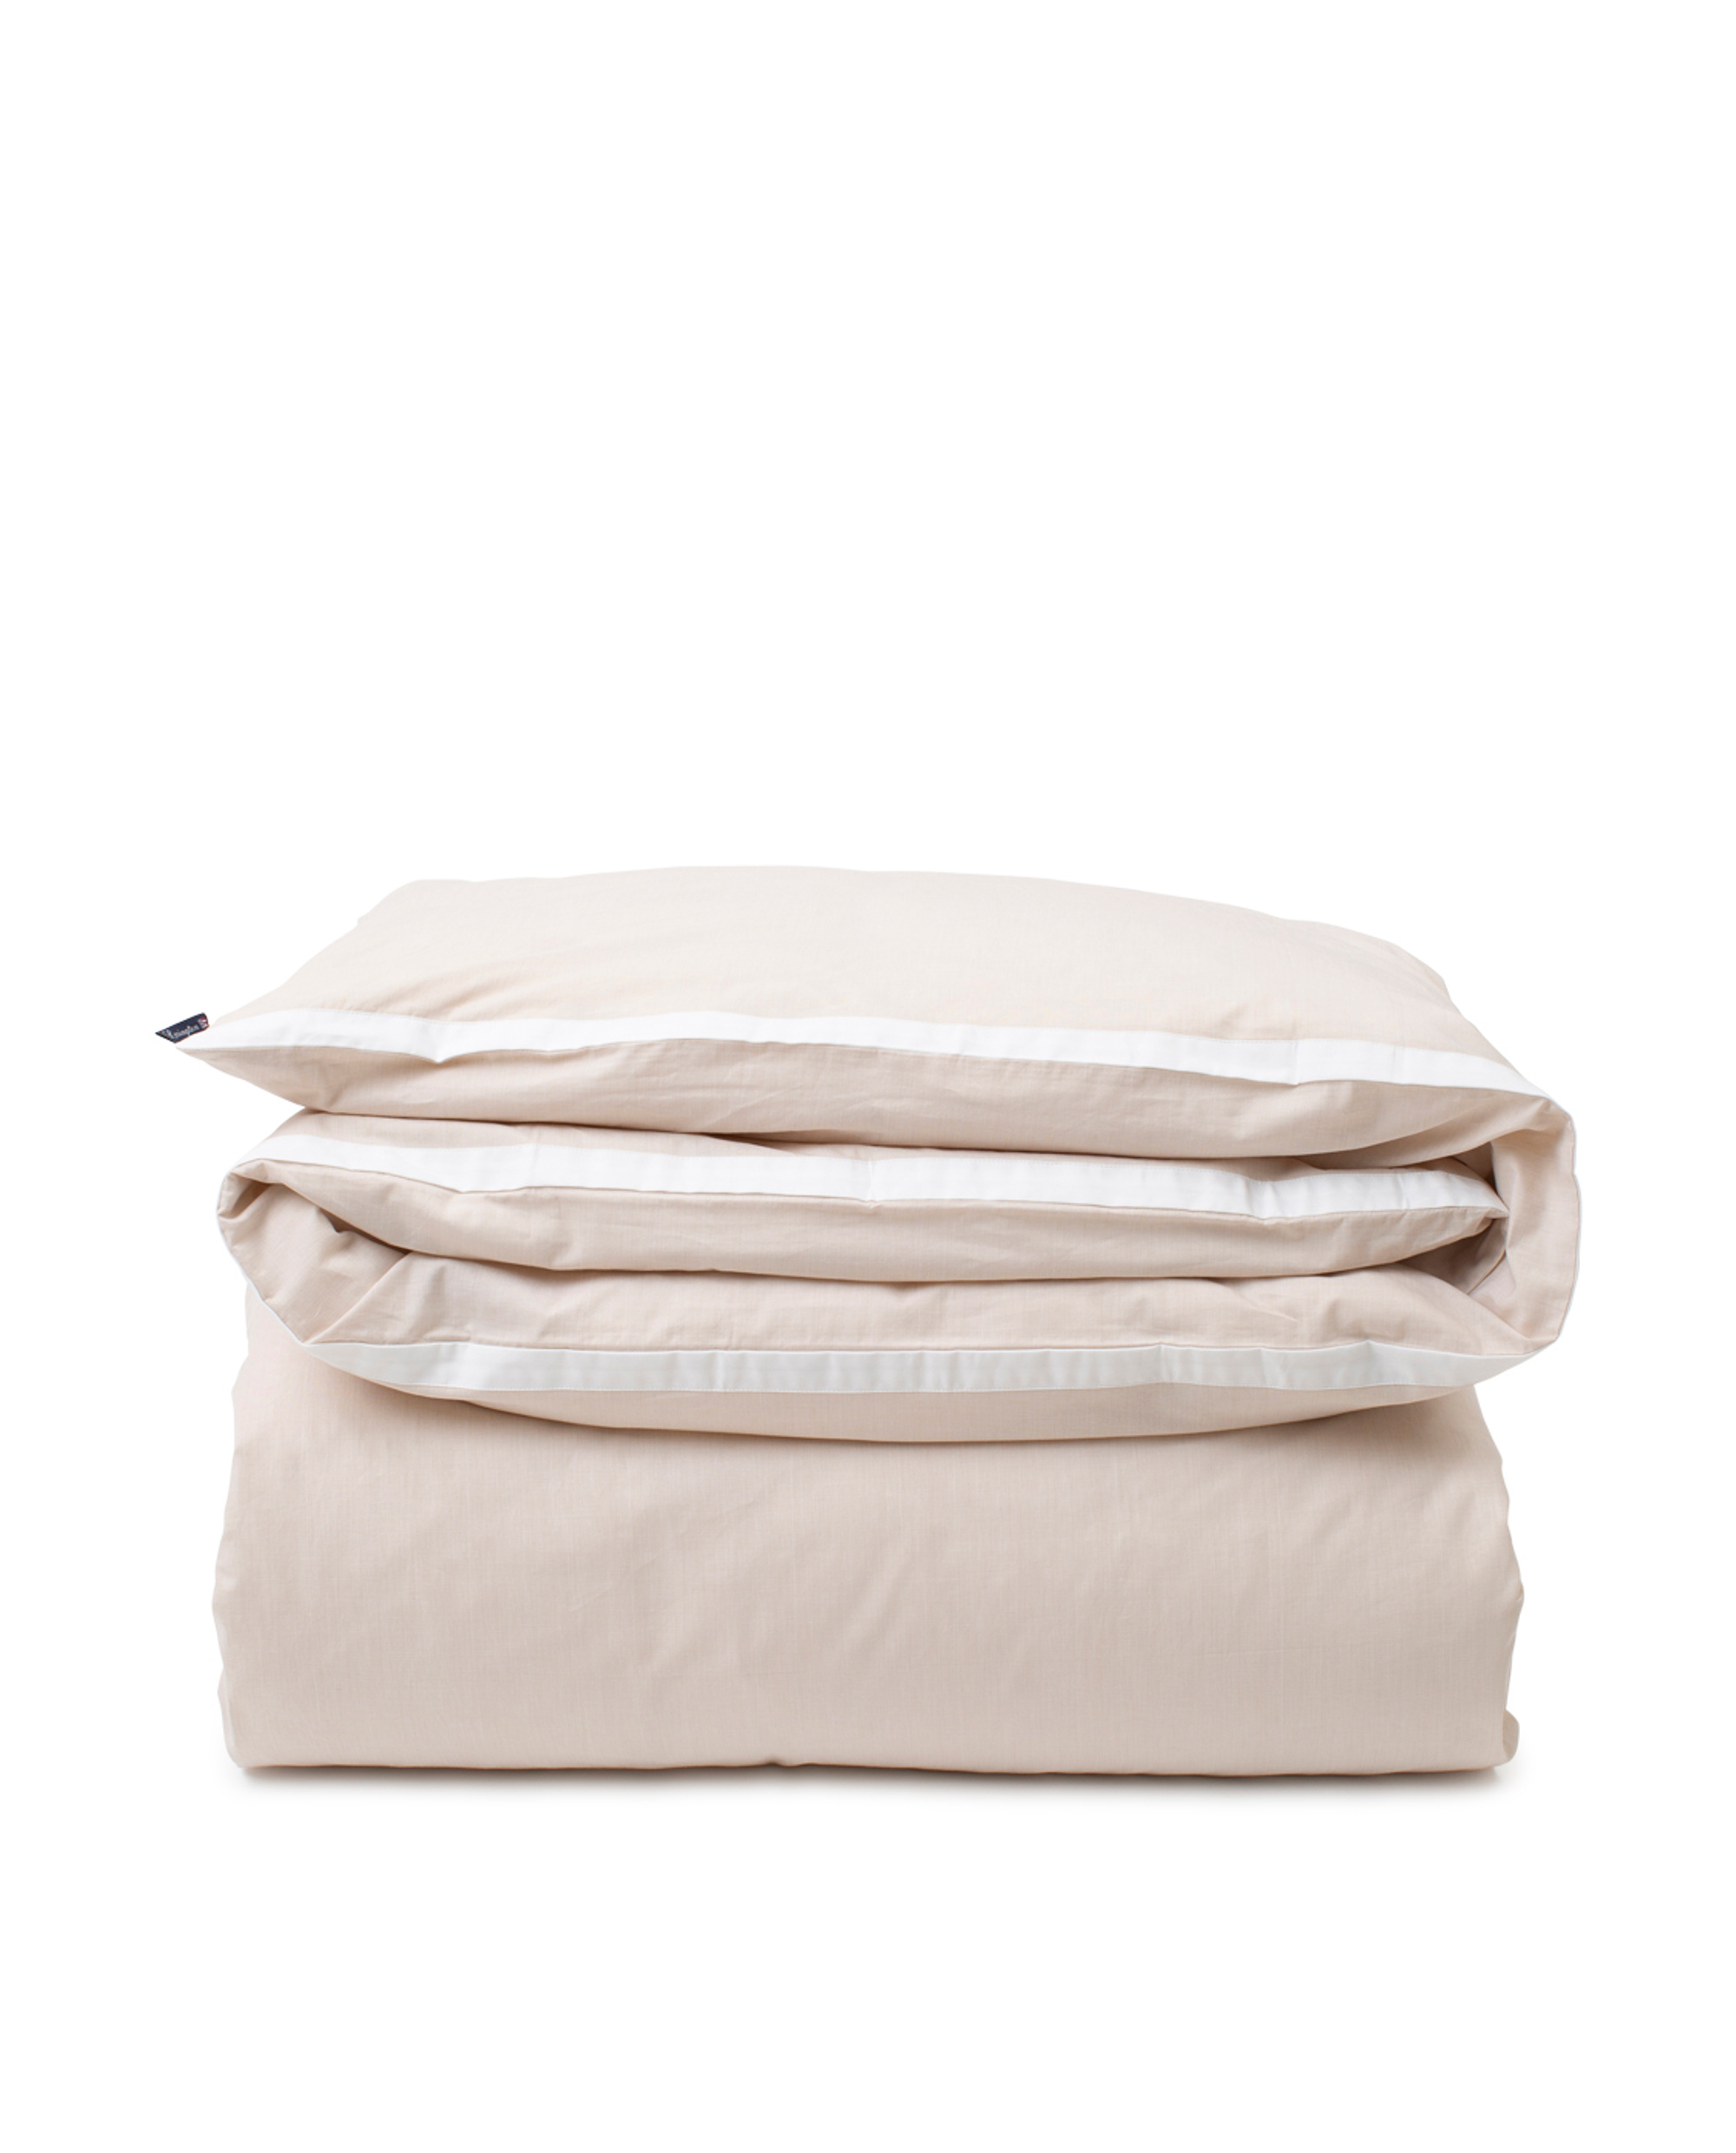 Beige/White Contrast Cotton Chambray Duvet Cover